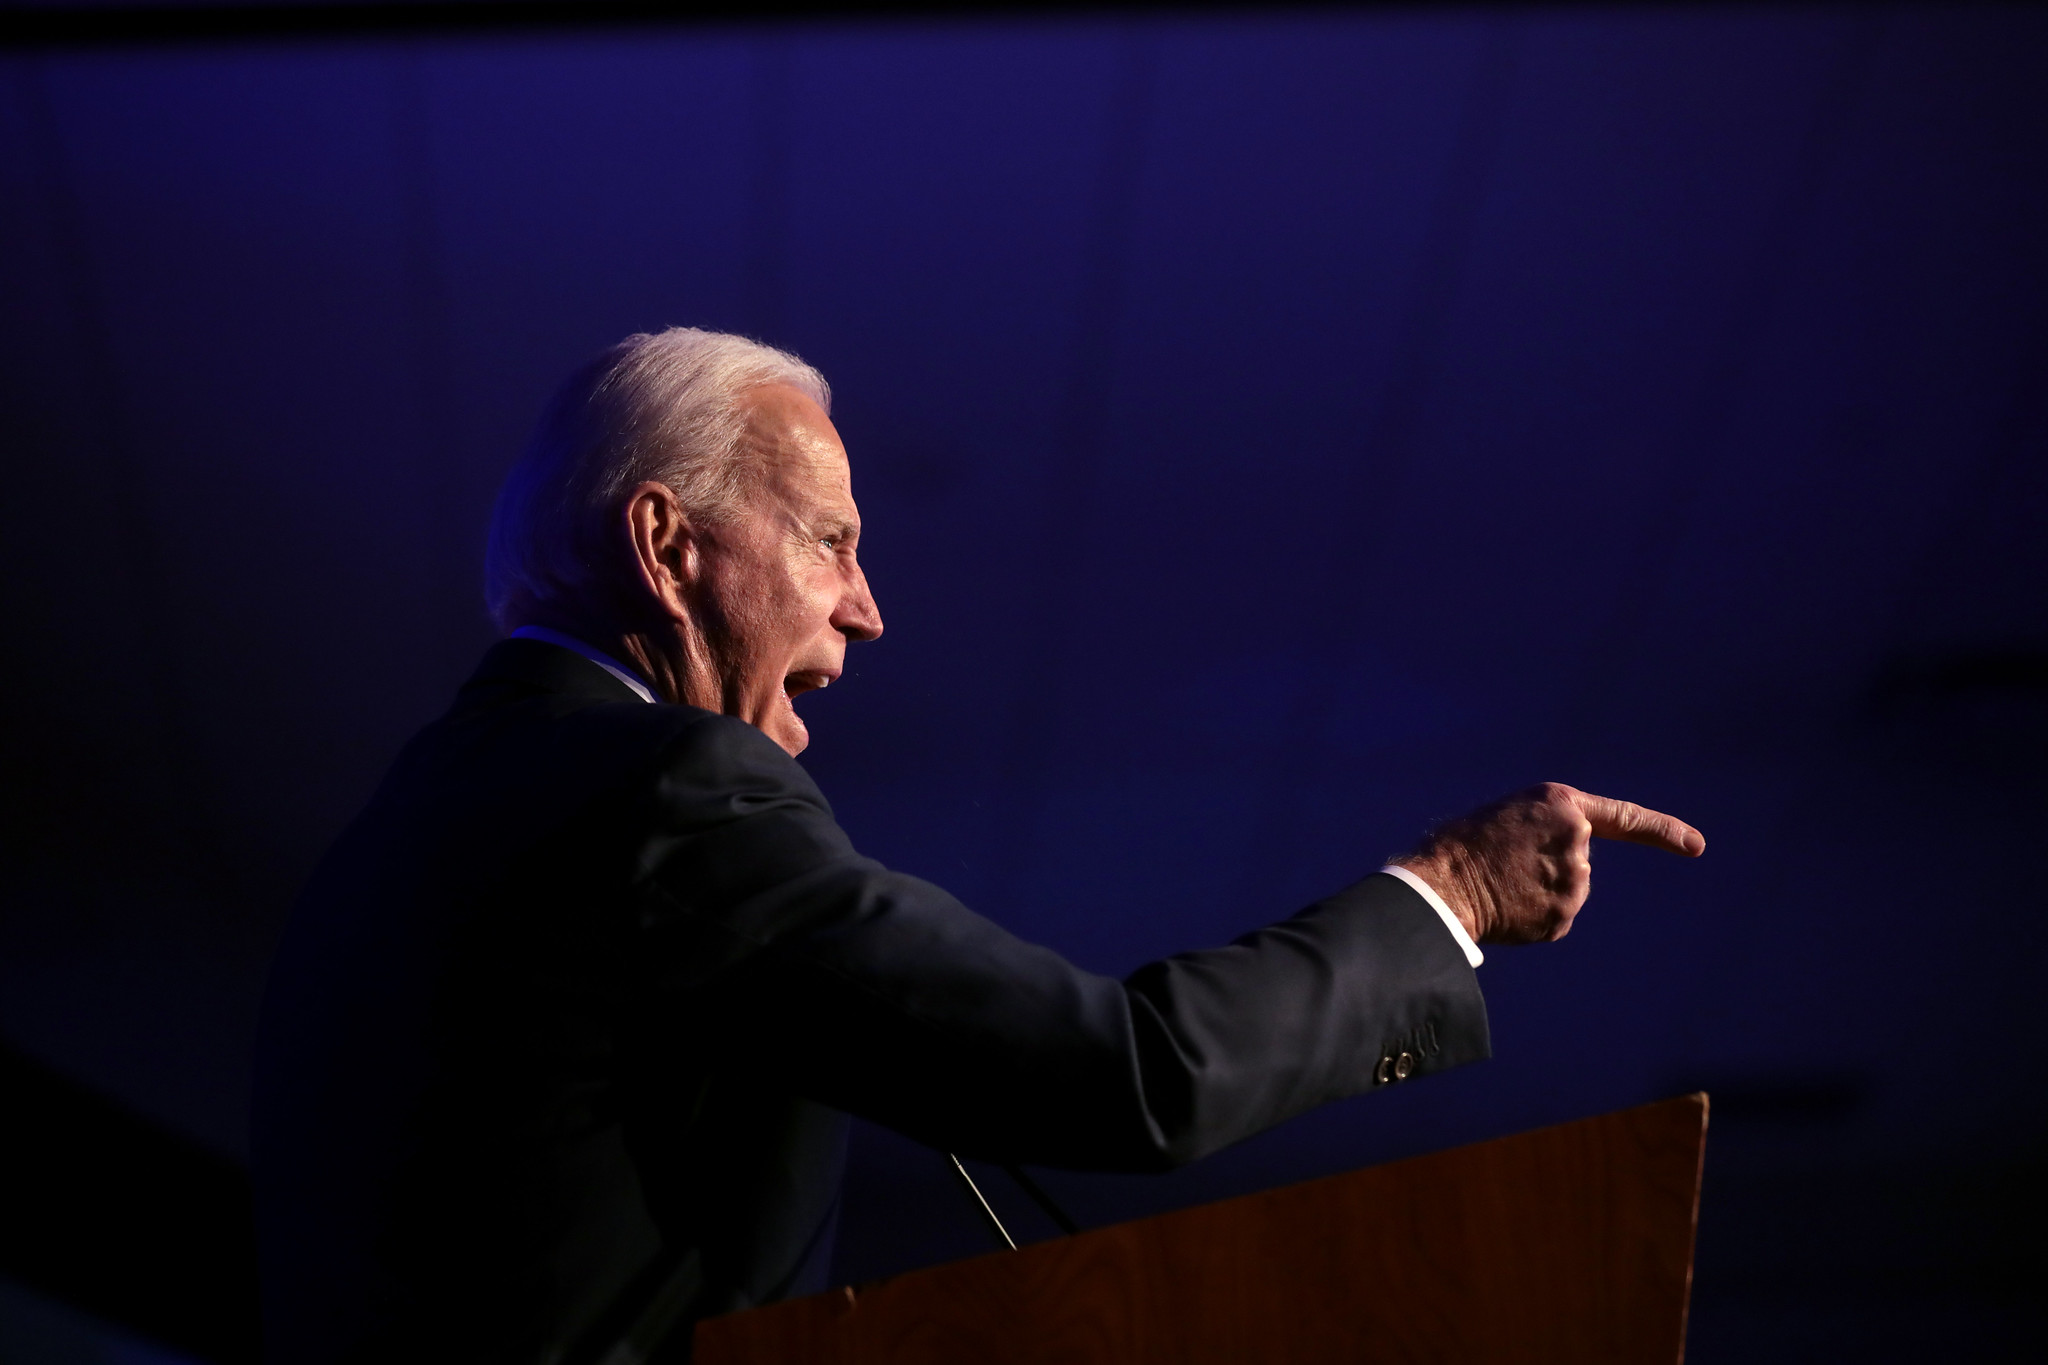 Joe Biden at the Clark County Democratic Party's 2020 Gala in Las Vegas. Gage Skimore/Flickr.